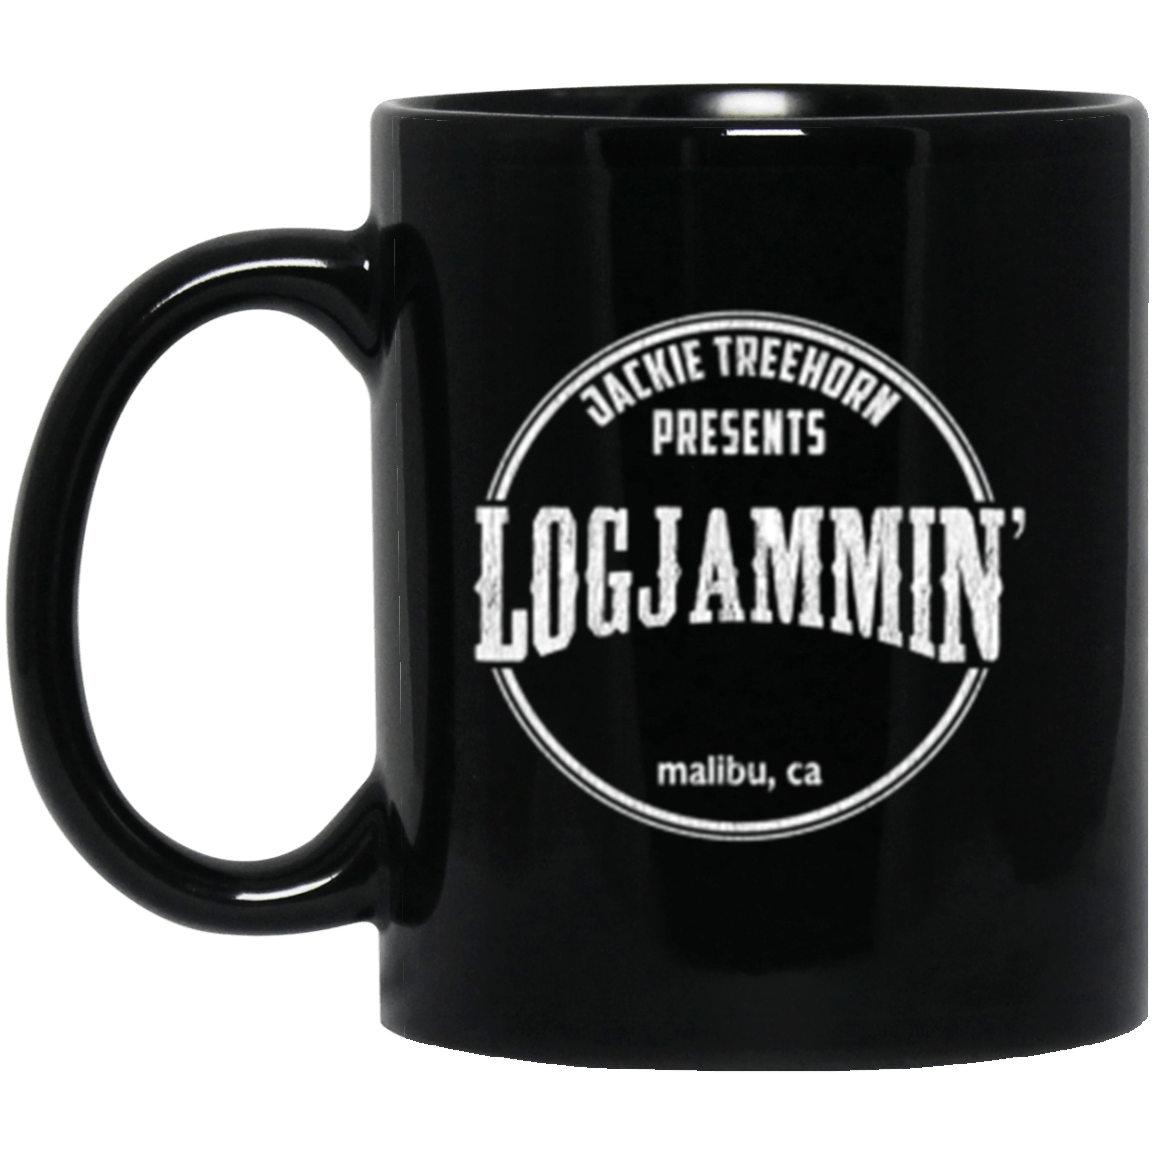 Logjammin' Black Mug 11oz (2-sided)